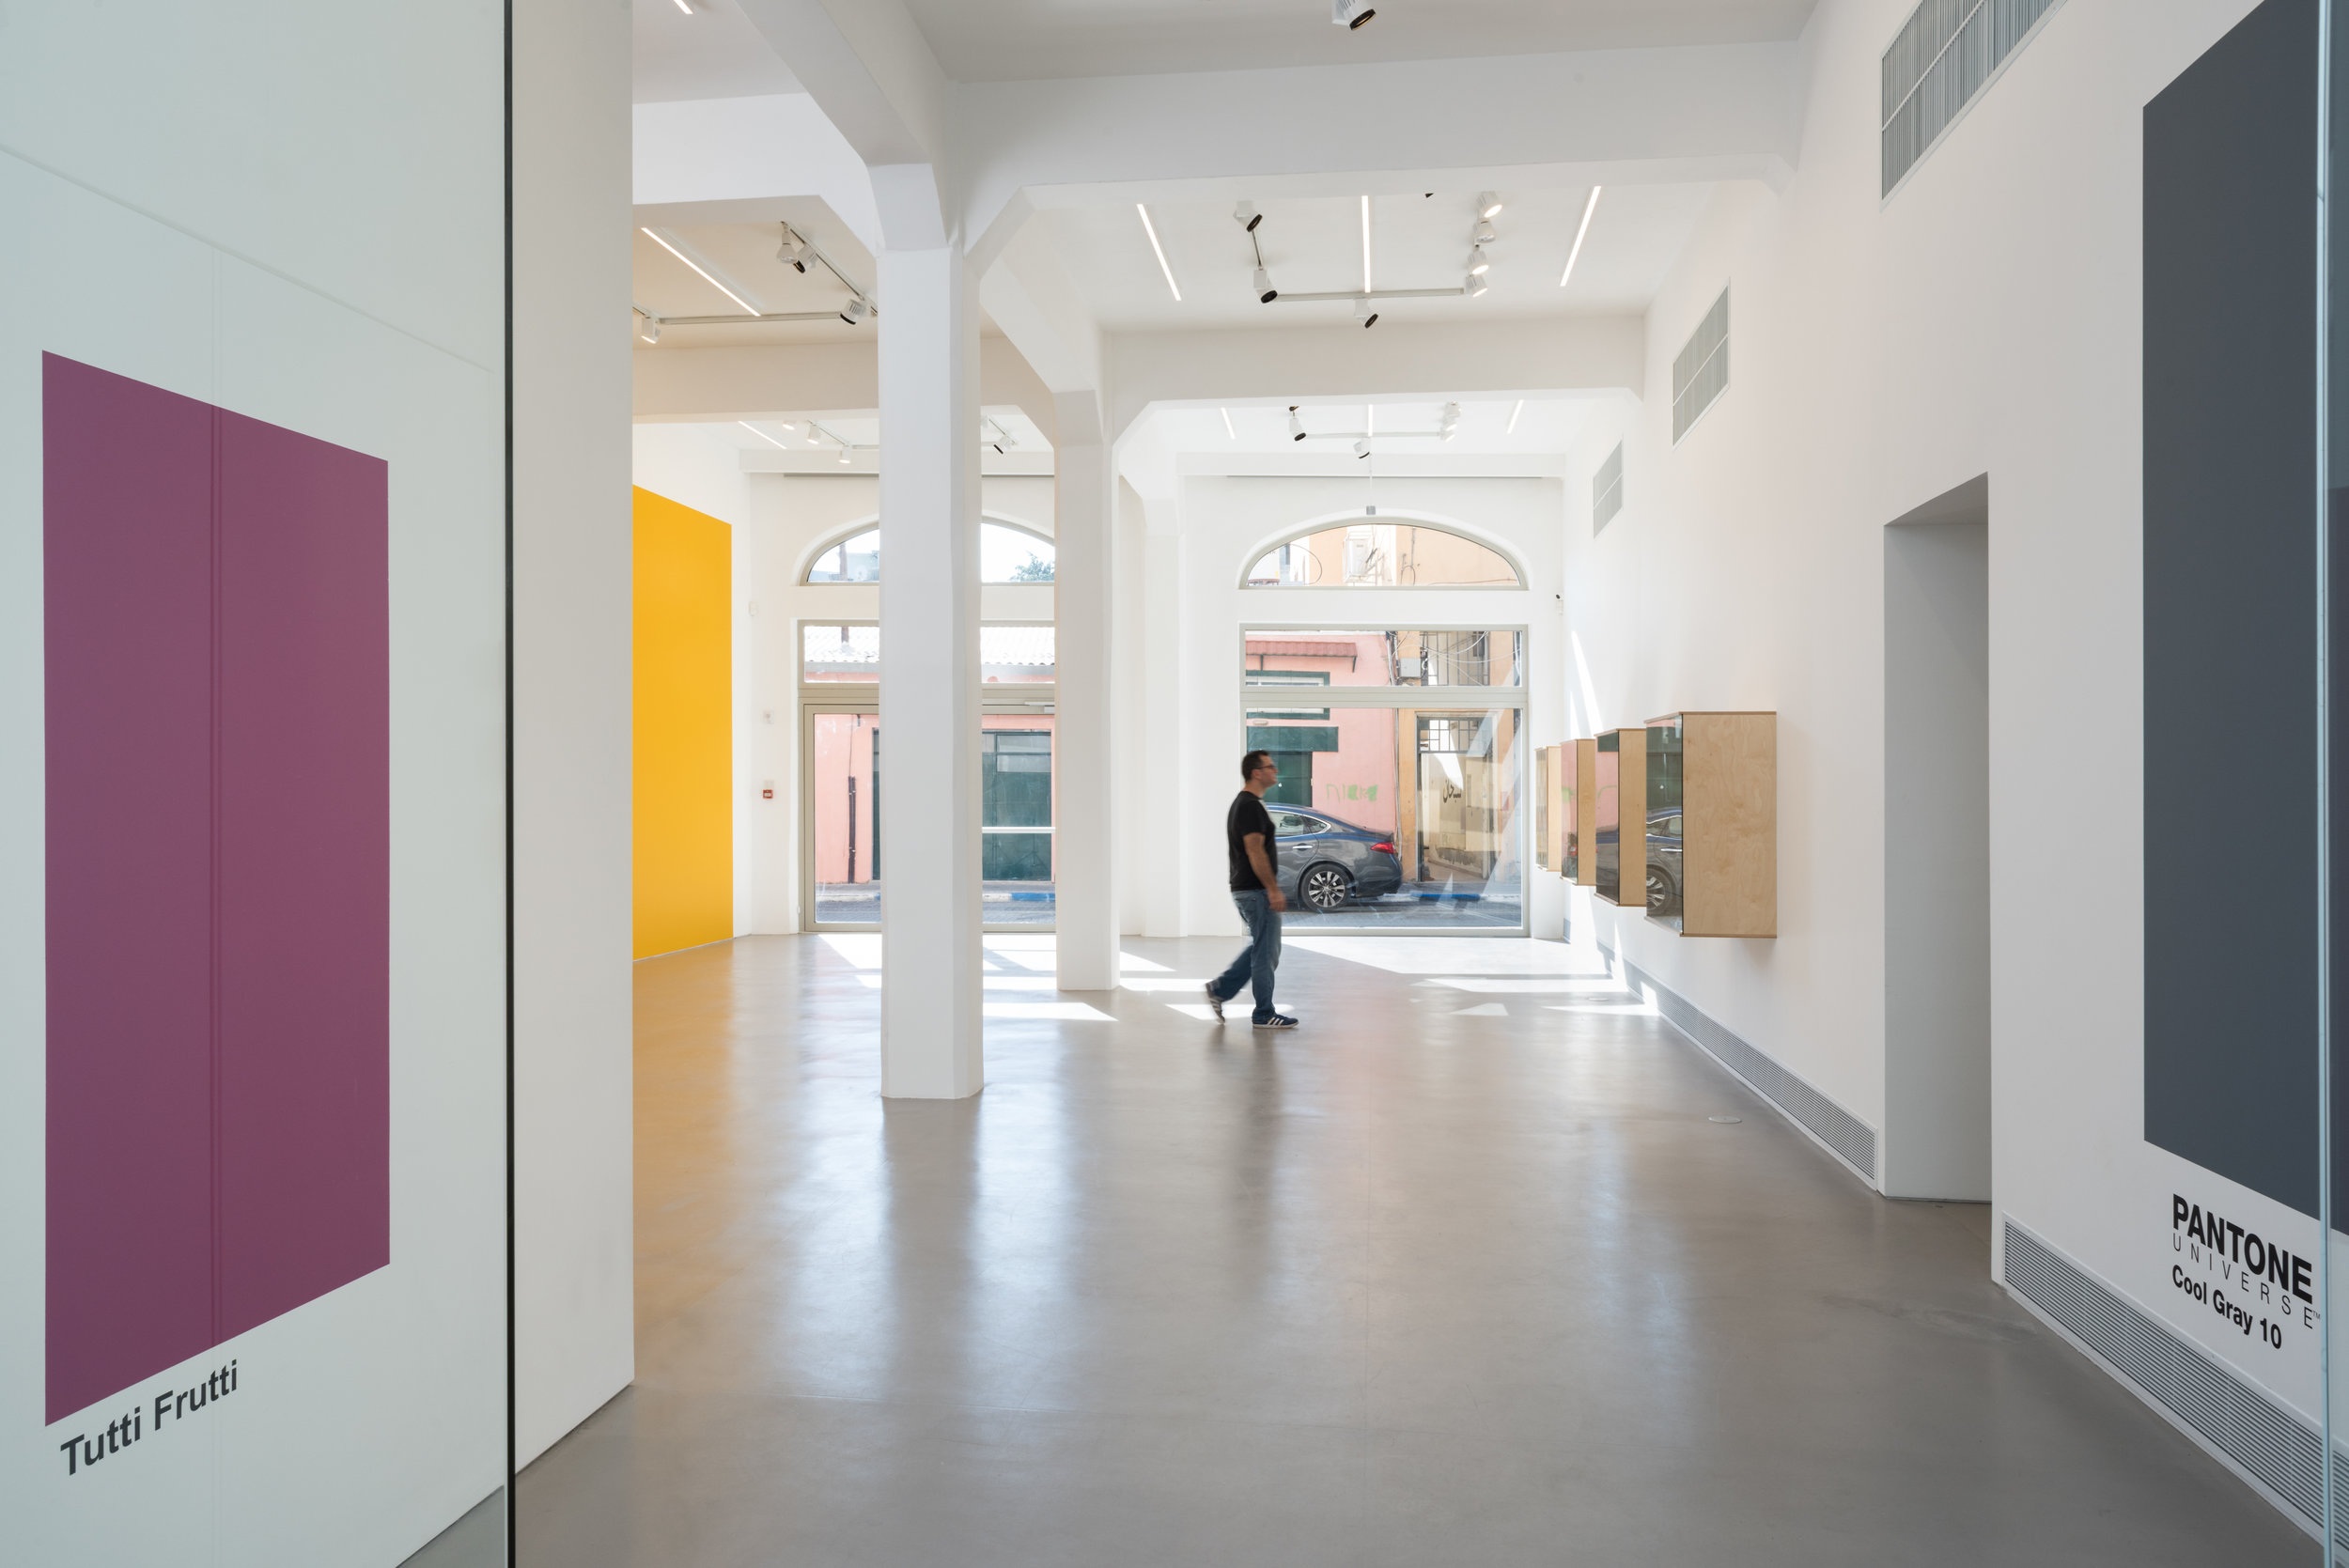 Installation view of  zerubbabel . Image by Youval Hai